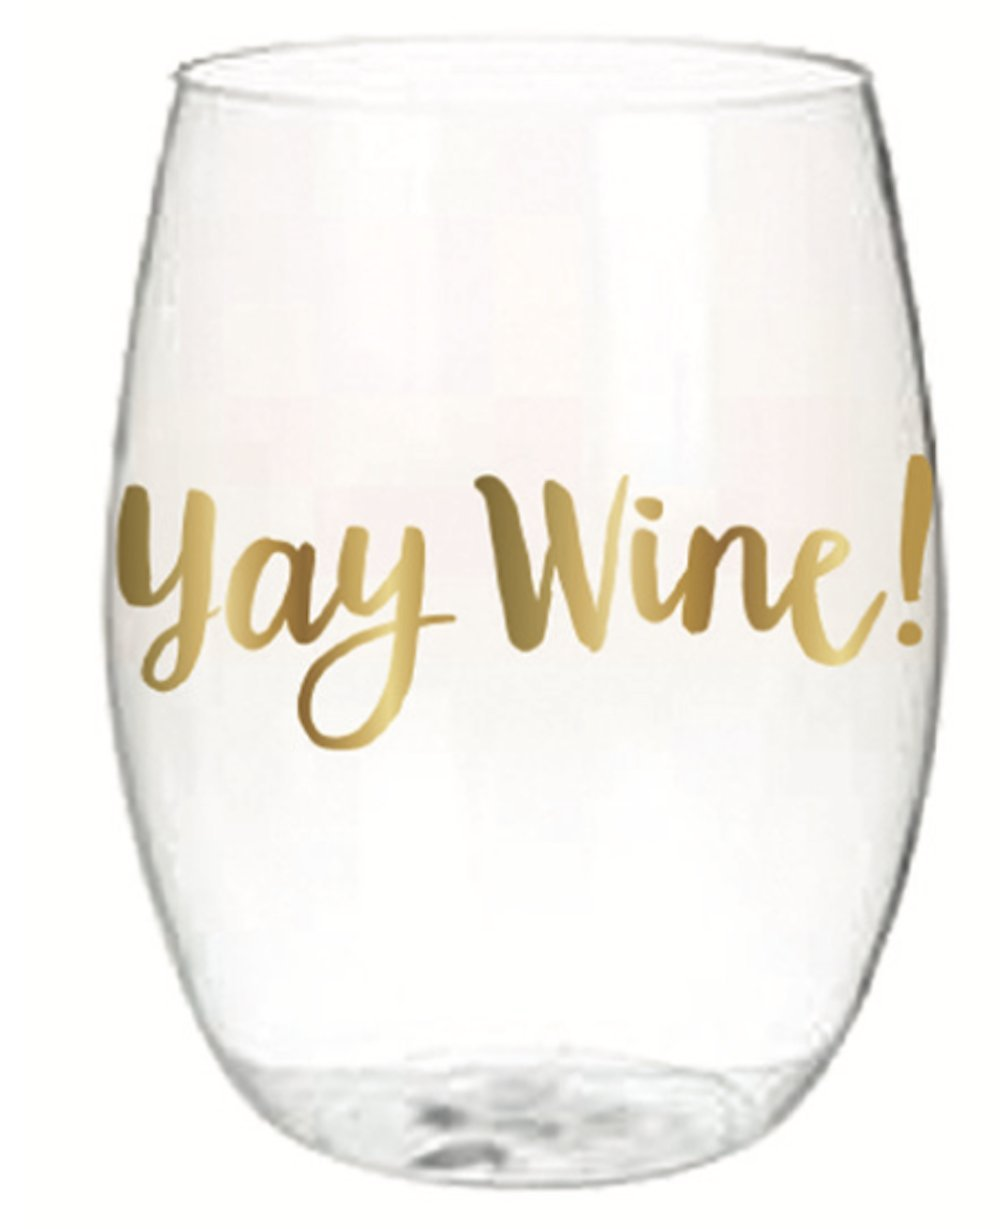 Yay Wine Set of 4 16 oz Stemless Wine Glass